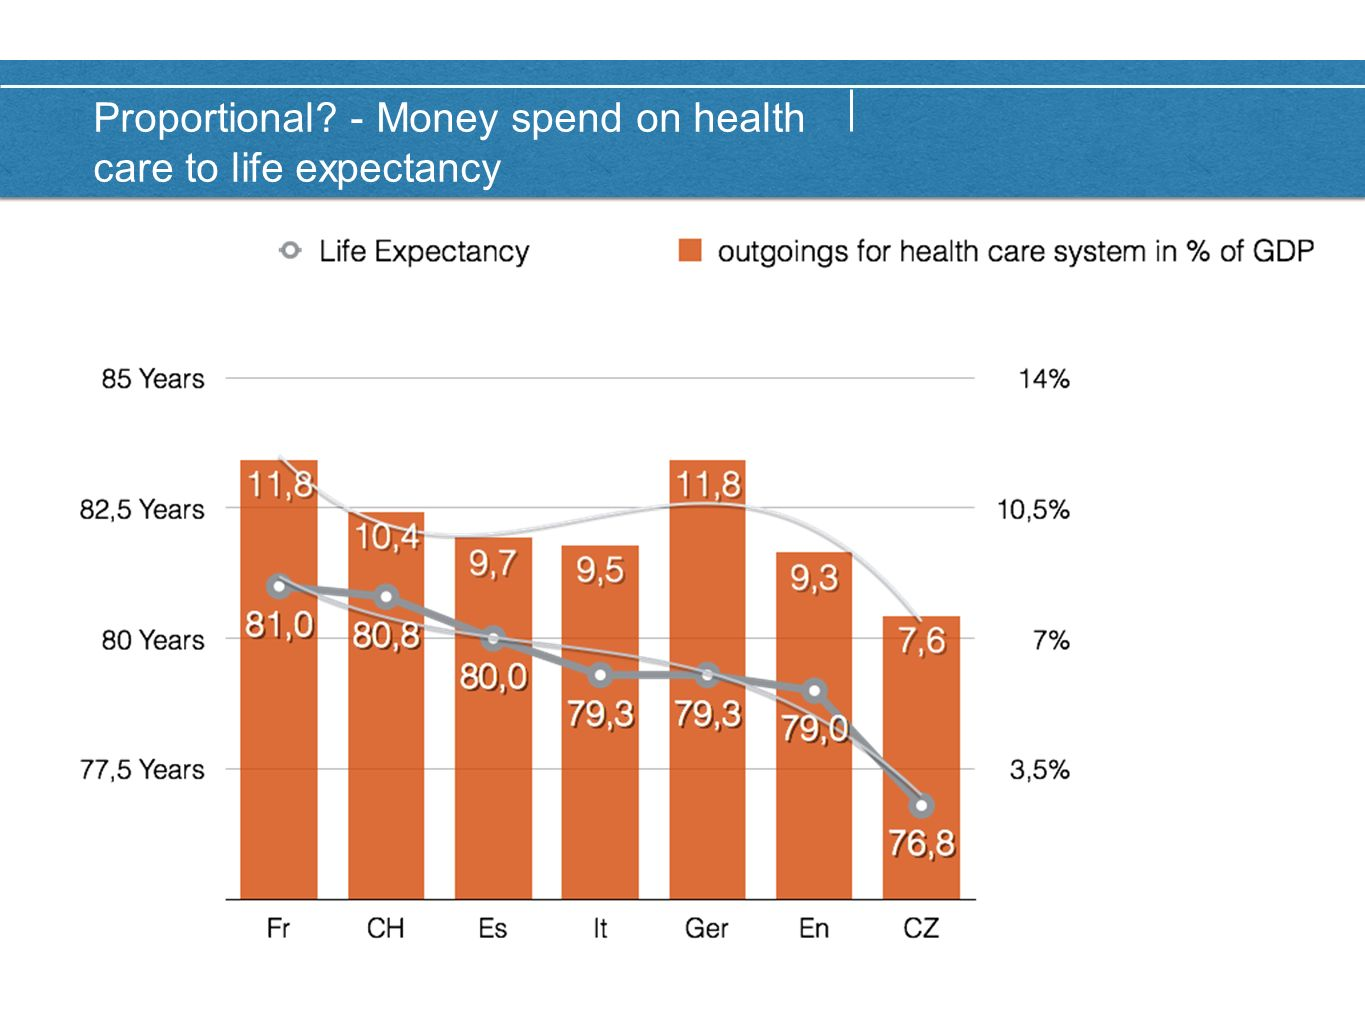 Proportional - Money spend on health care to life expectancy